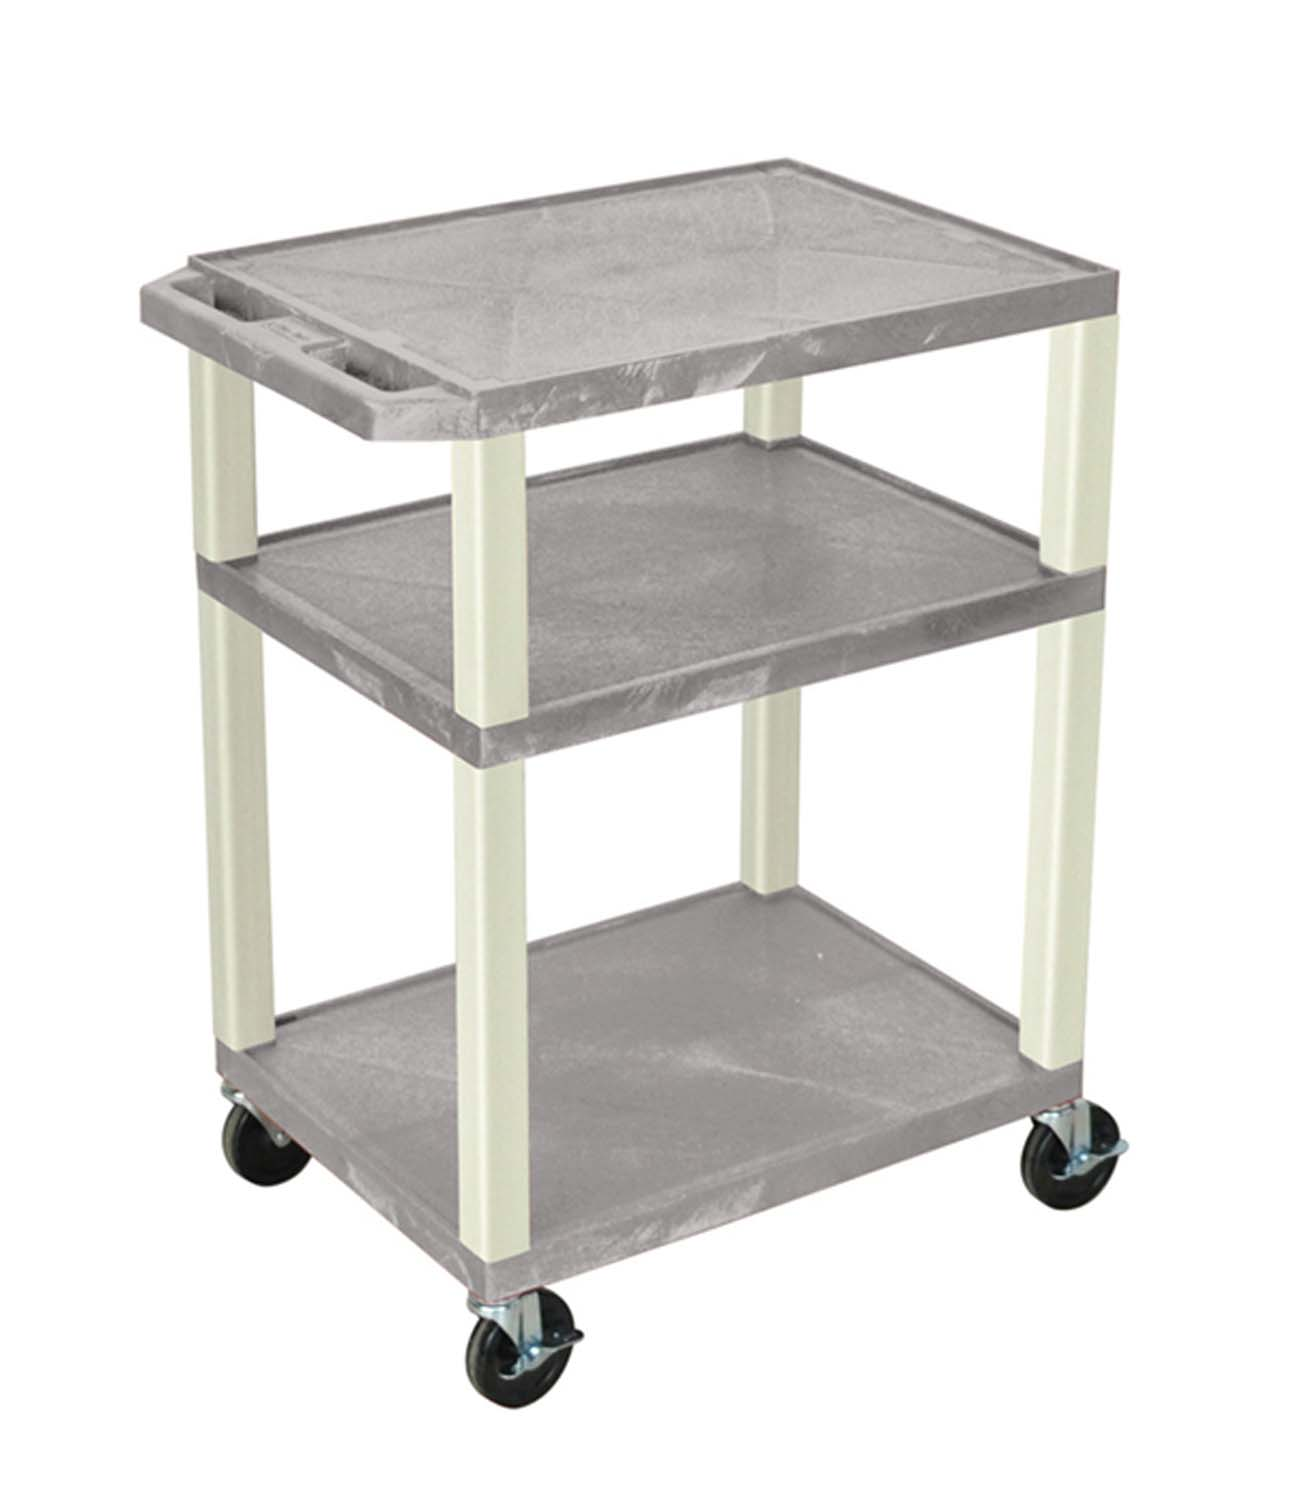 Offex Gray Tuffy AV Cart 3 Shelves Putty Legs